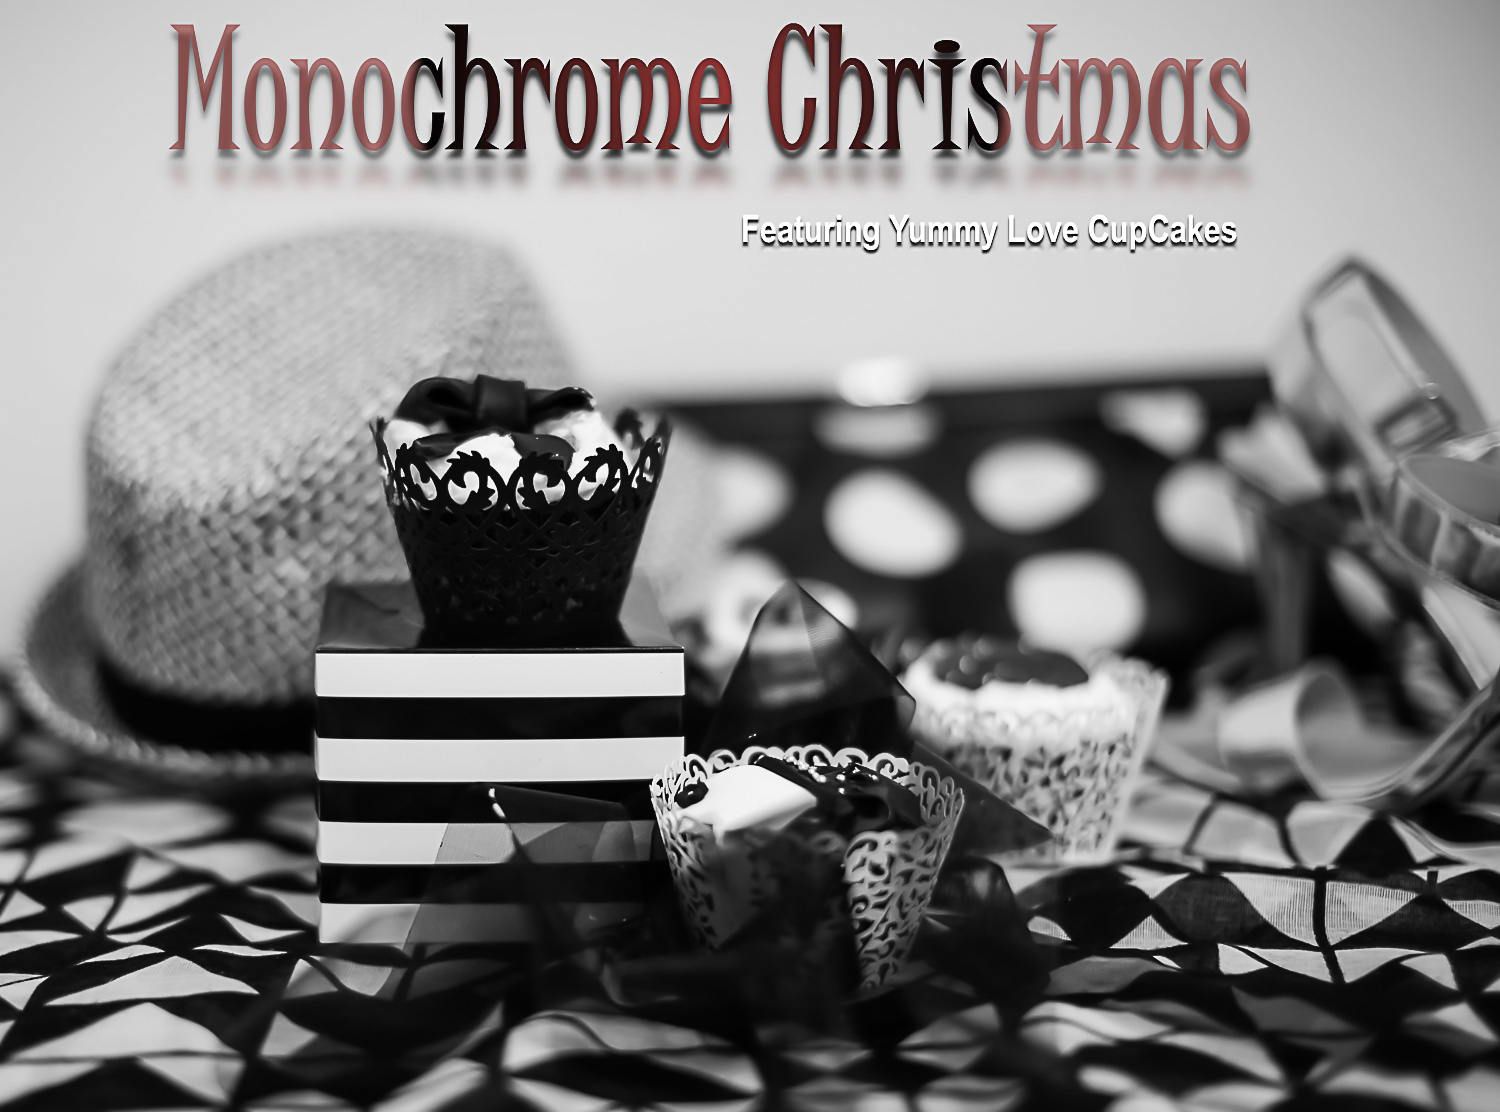 monochrome-cake_best-christmas-cupcakes_monochrome-christmas-ideas_a-black-and-white-christmas_best-cupcakes-brisbane_best-bakery-queensland_monochromatic-christmas-deco_fashionable-stylish-christmas-lunch-8